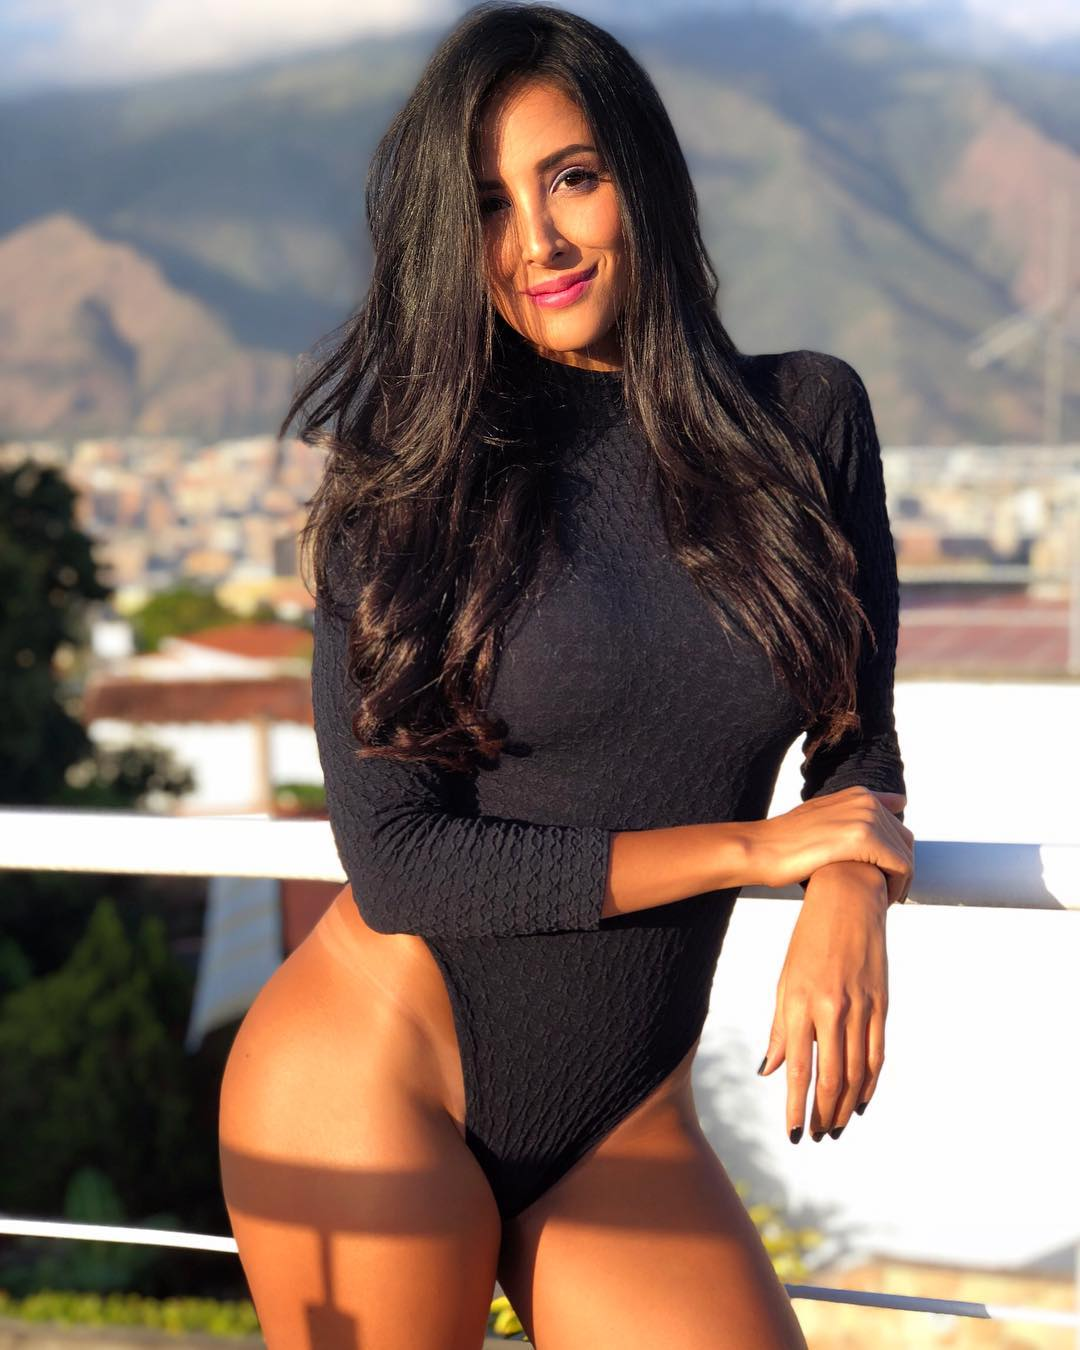 Yuvanna-Montalvo-Wallpapers-Insta-Fit-Bio-5